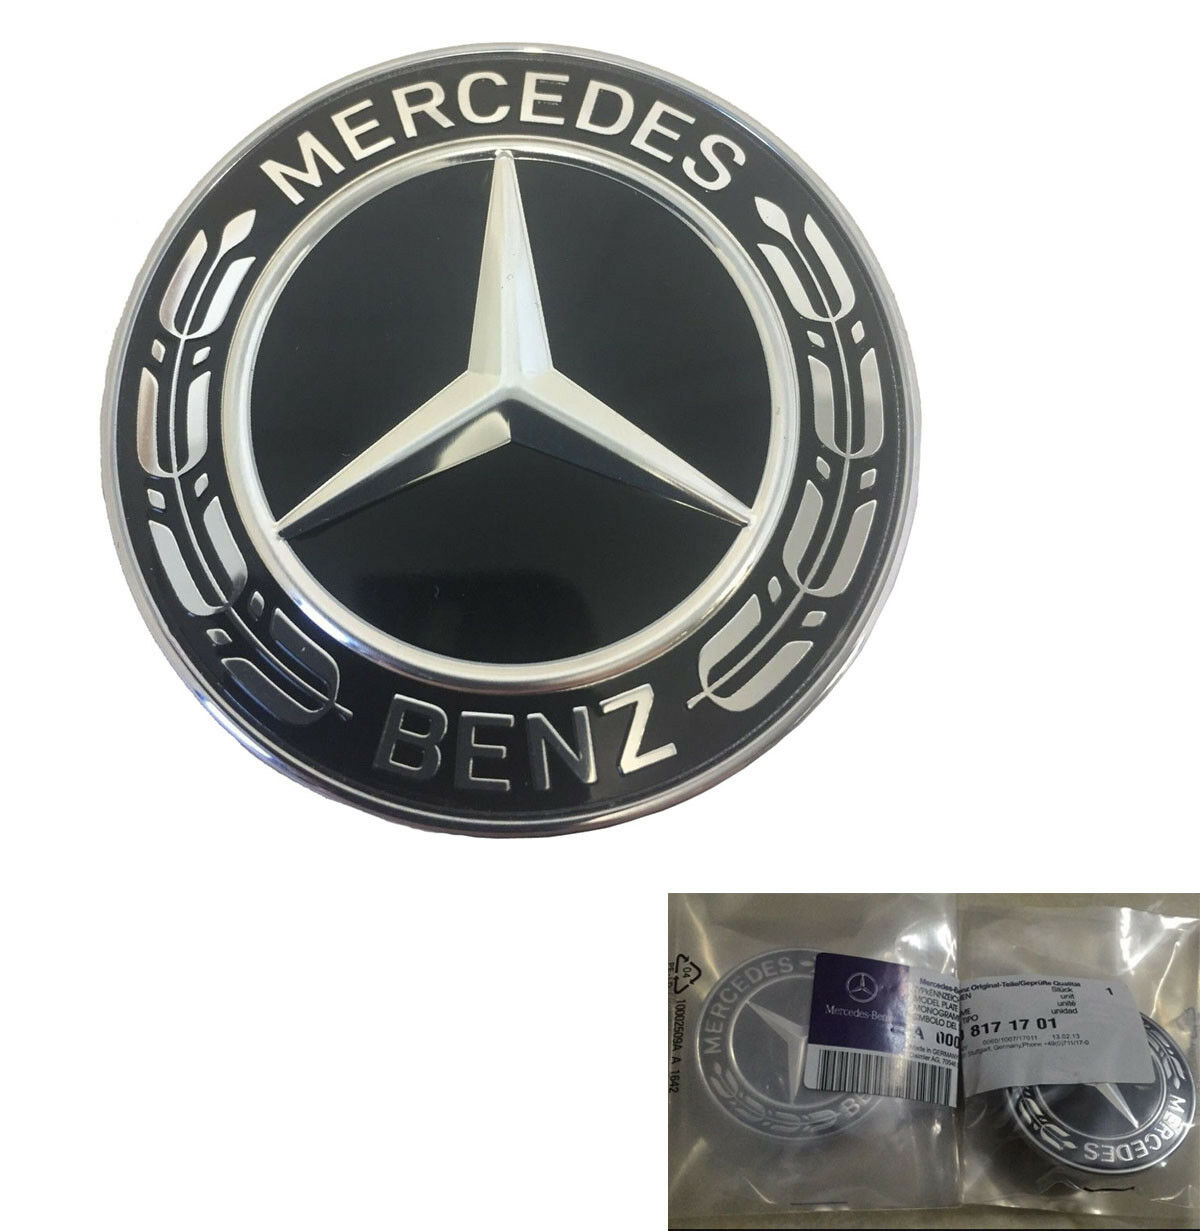 Genuine mercedes benz black wreath flat bonnet badge for Mercedes benz bonnet badge